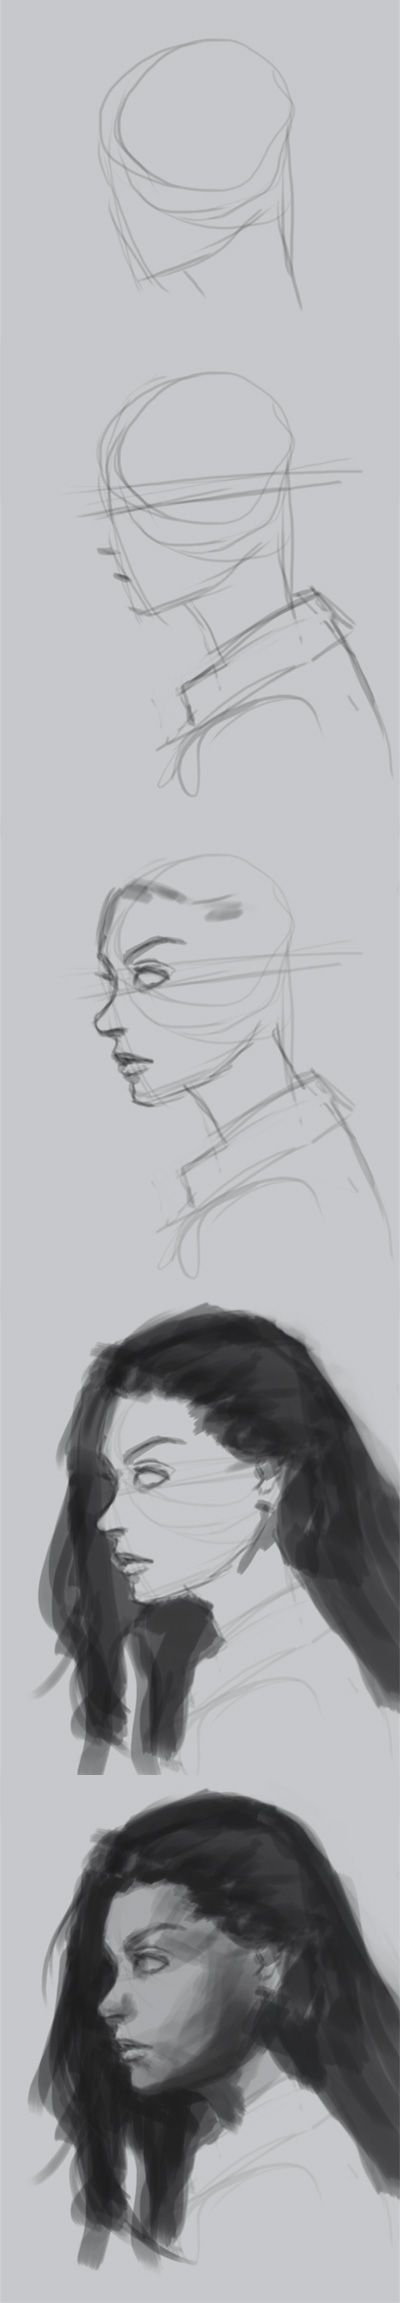 How To Draw Face Side View Here Is Another Portrait Sketch Study Practice  Of A